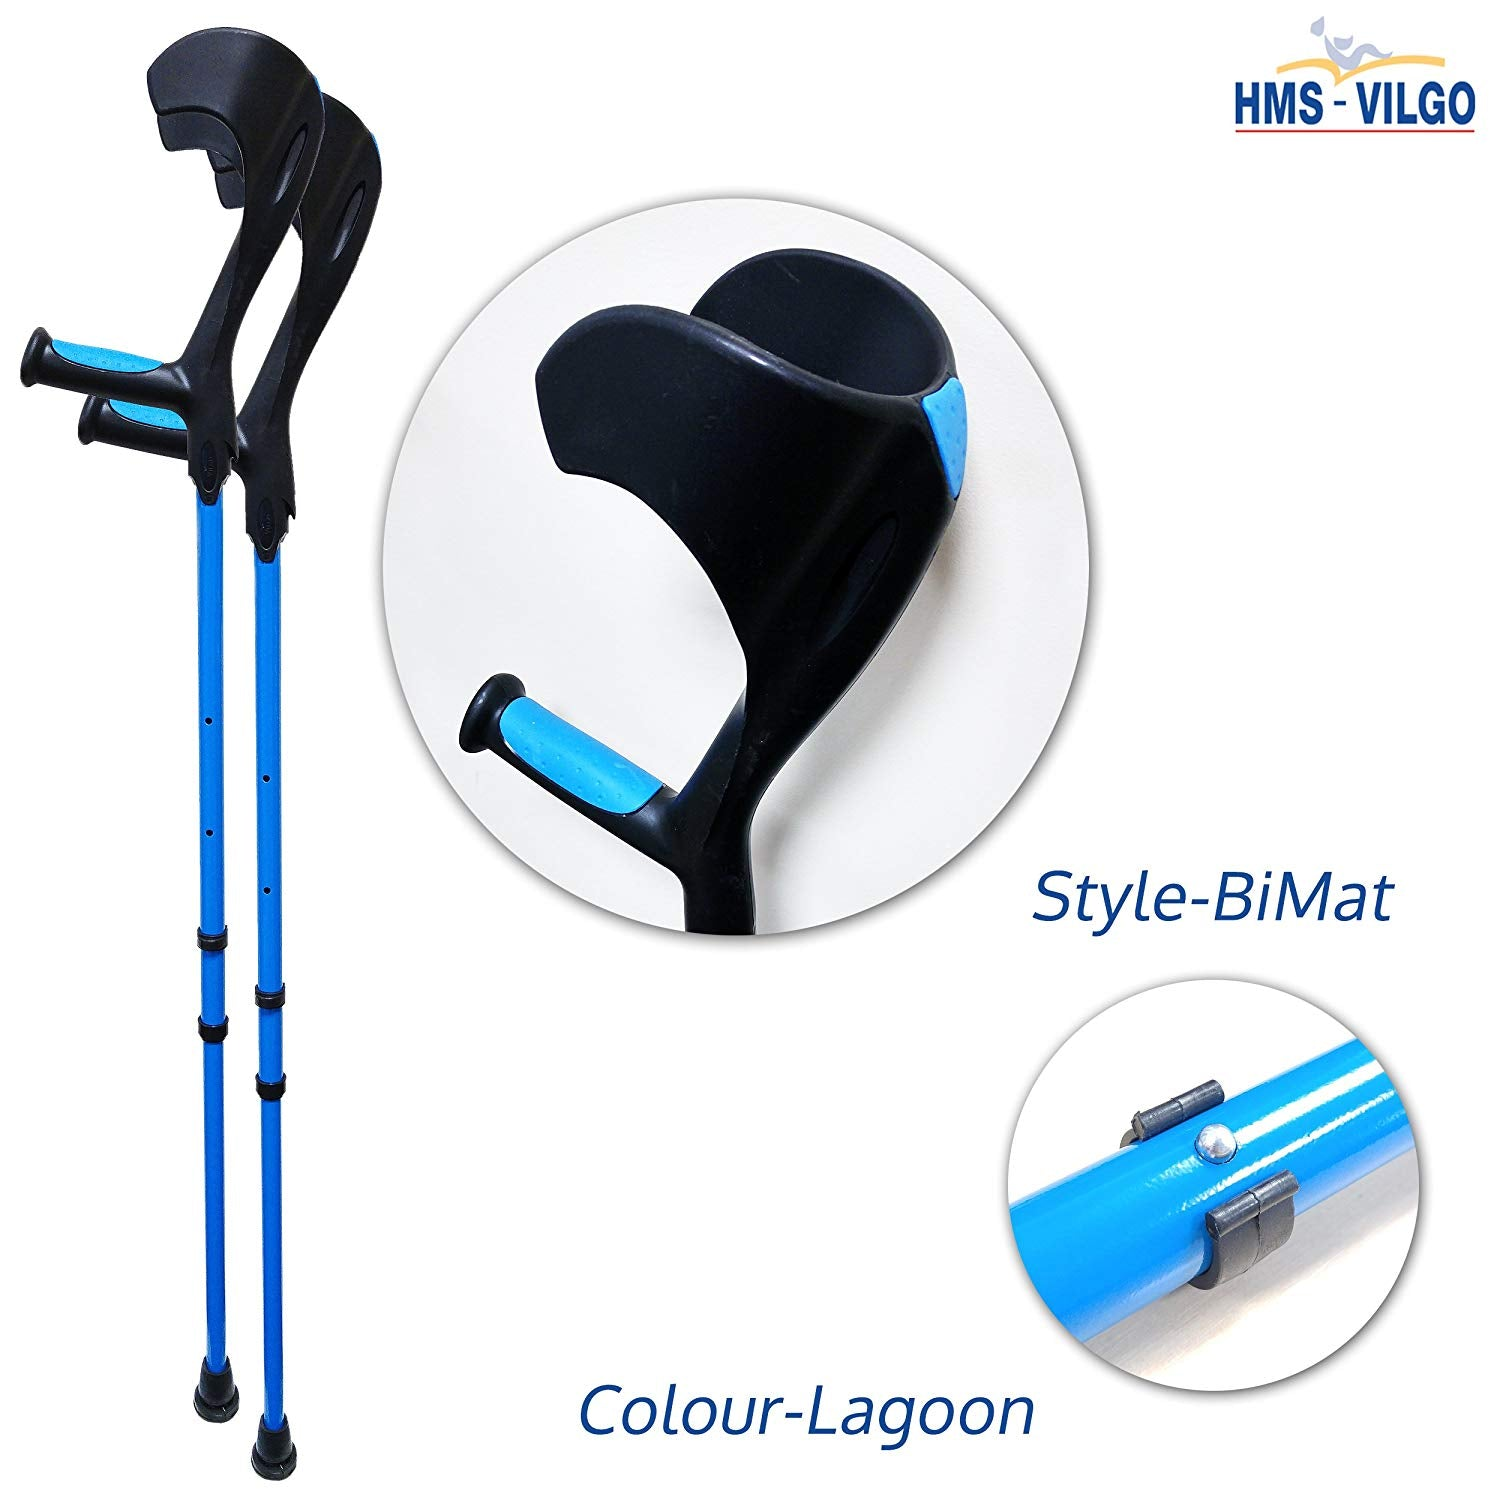 HMS Vilgo Modern Non-Slip Adjustable Colourful Crutches (Pair)